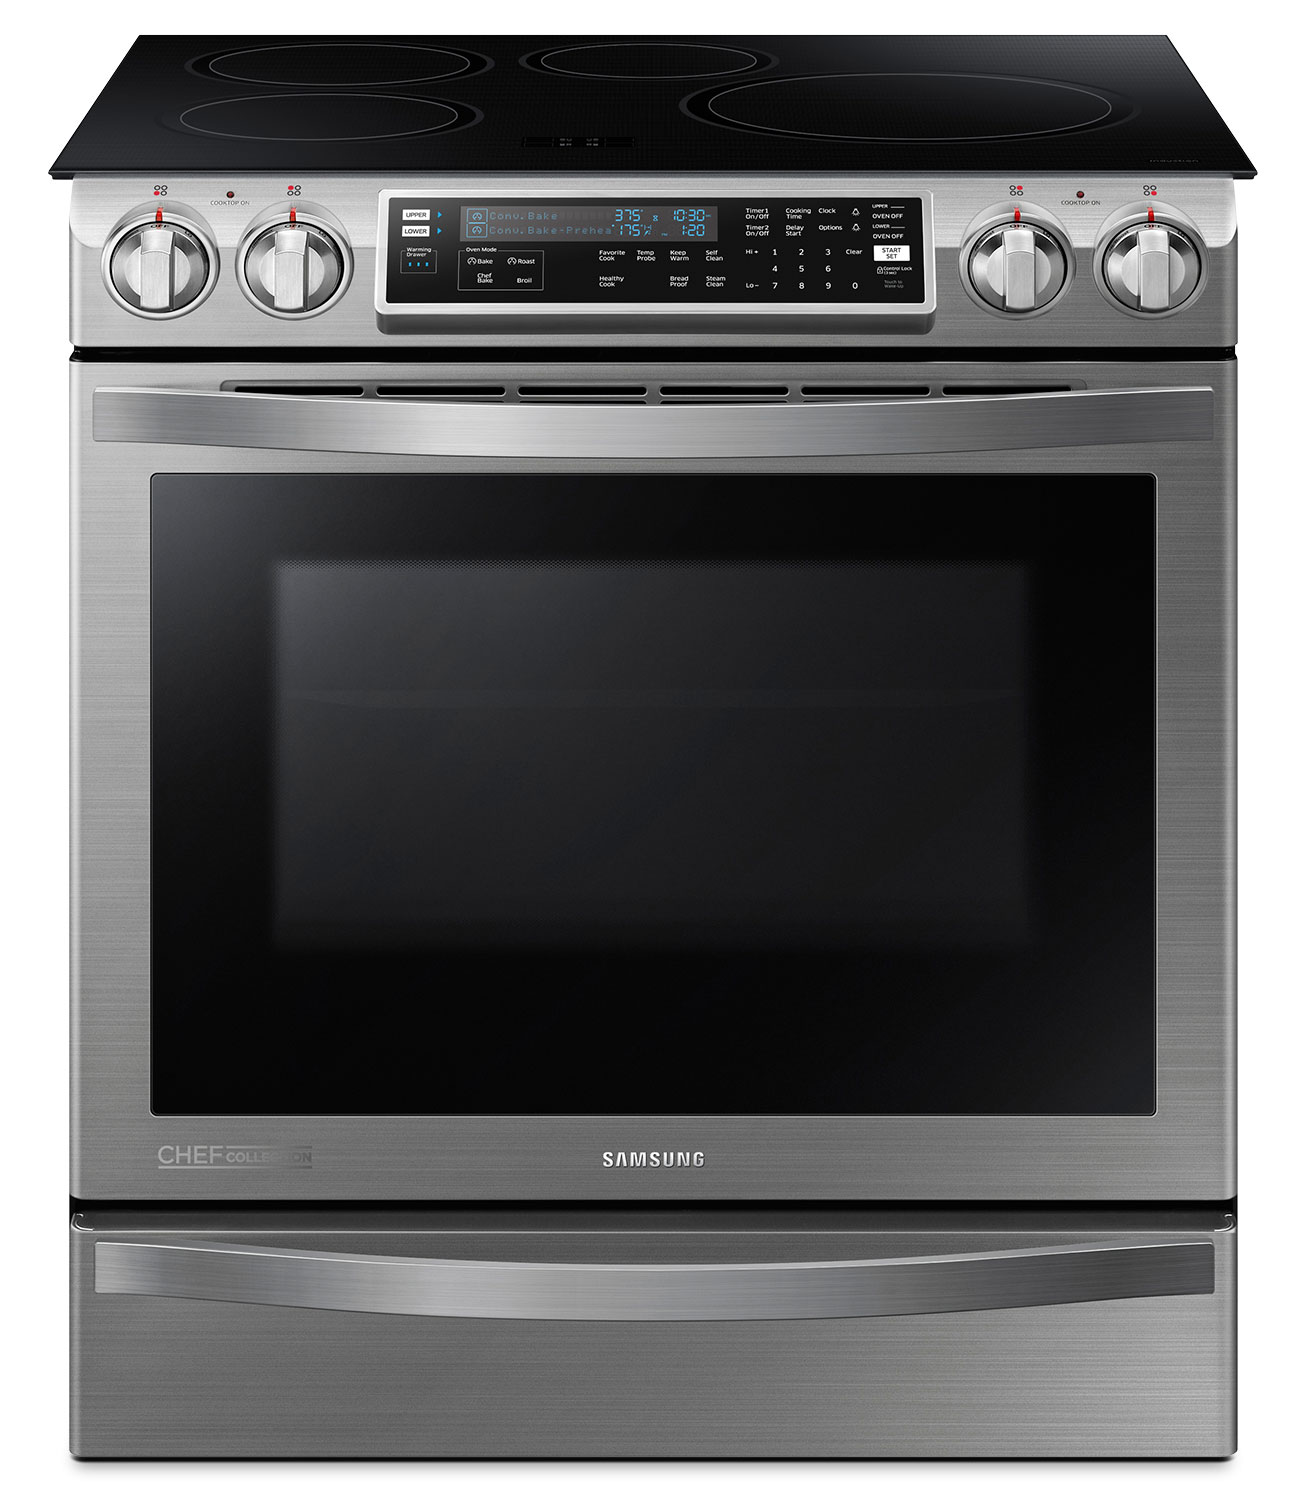 Samsung Stainless Steel Slide-In Induction Convection Range - NE58H9970WS